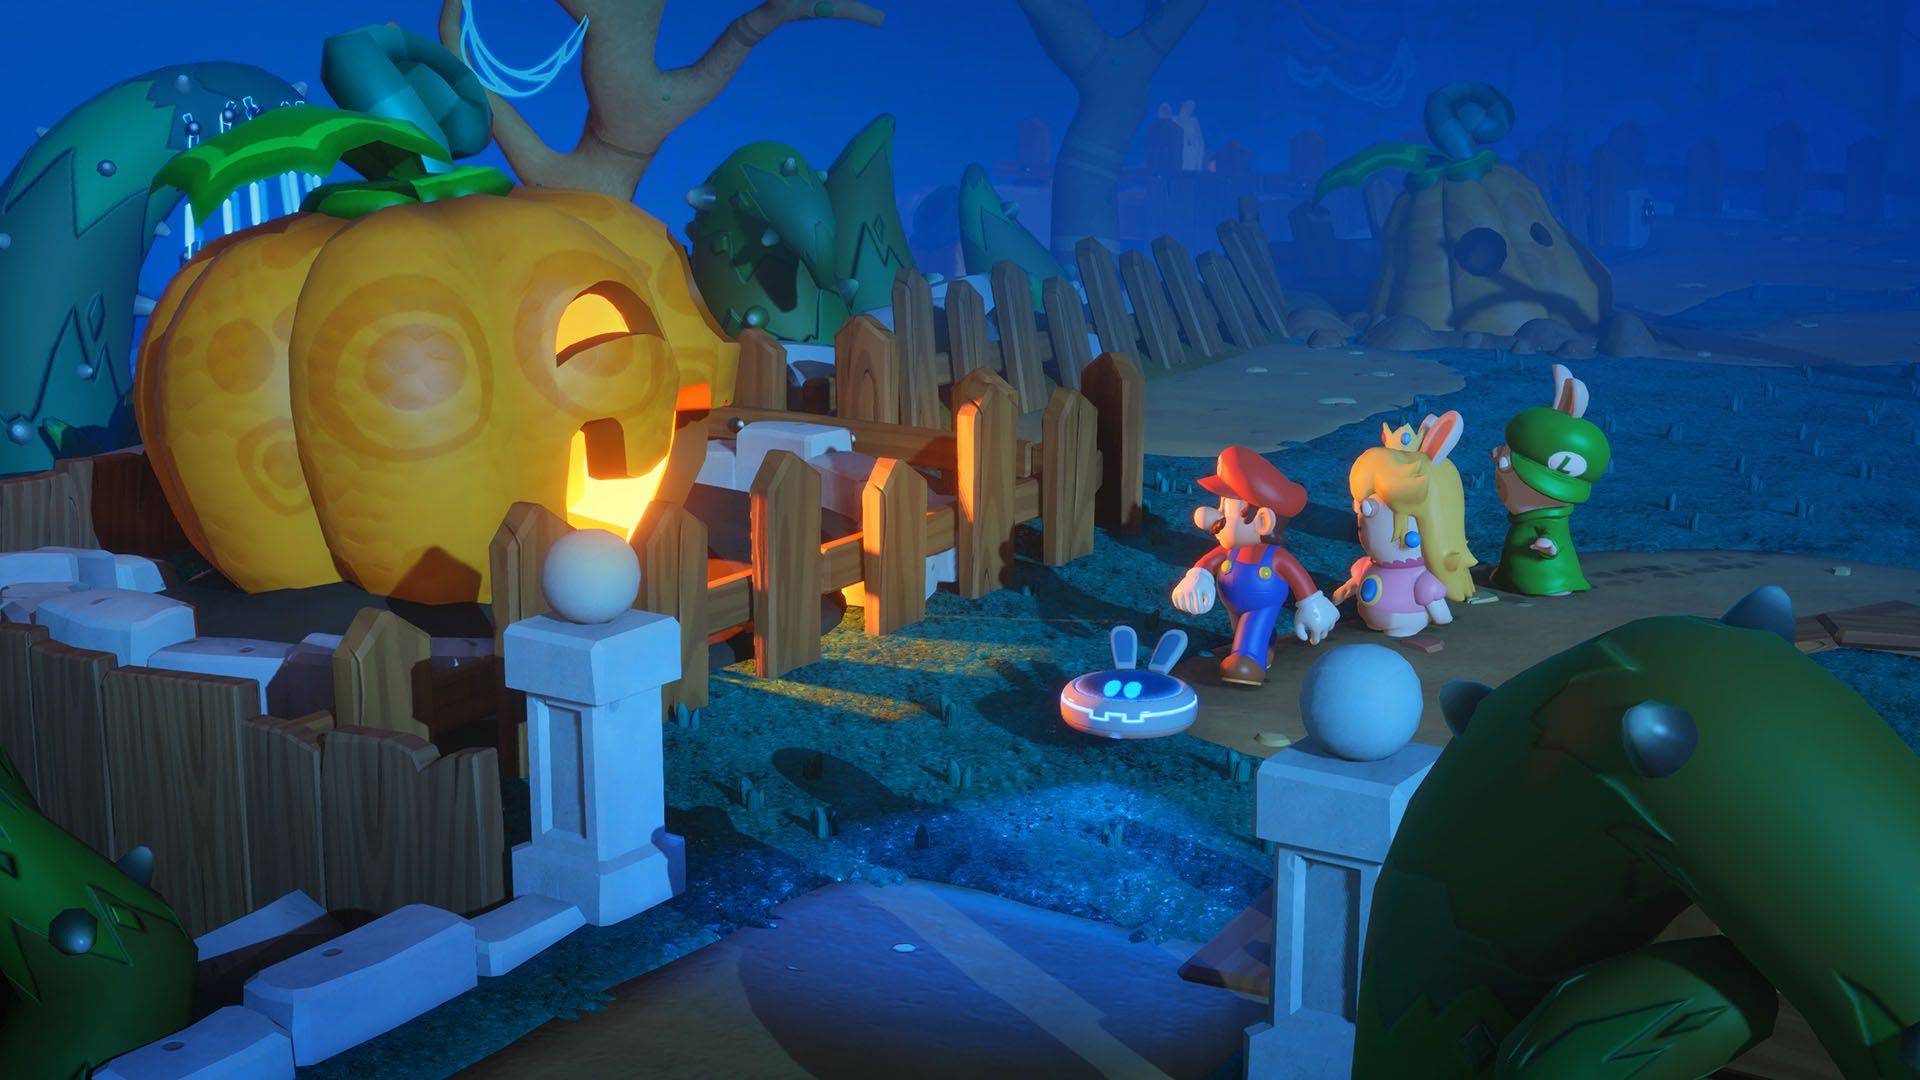 In this screenshot for Mario + Rabbids Kingdom Battle, Mario is walking in a creepy, nighttime setting, trailed by a rabbid dressed as Princess Peach and another dressed as Luigi. The team is walking past a large jack-o-lantern with a glowing mouth and ey